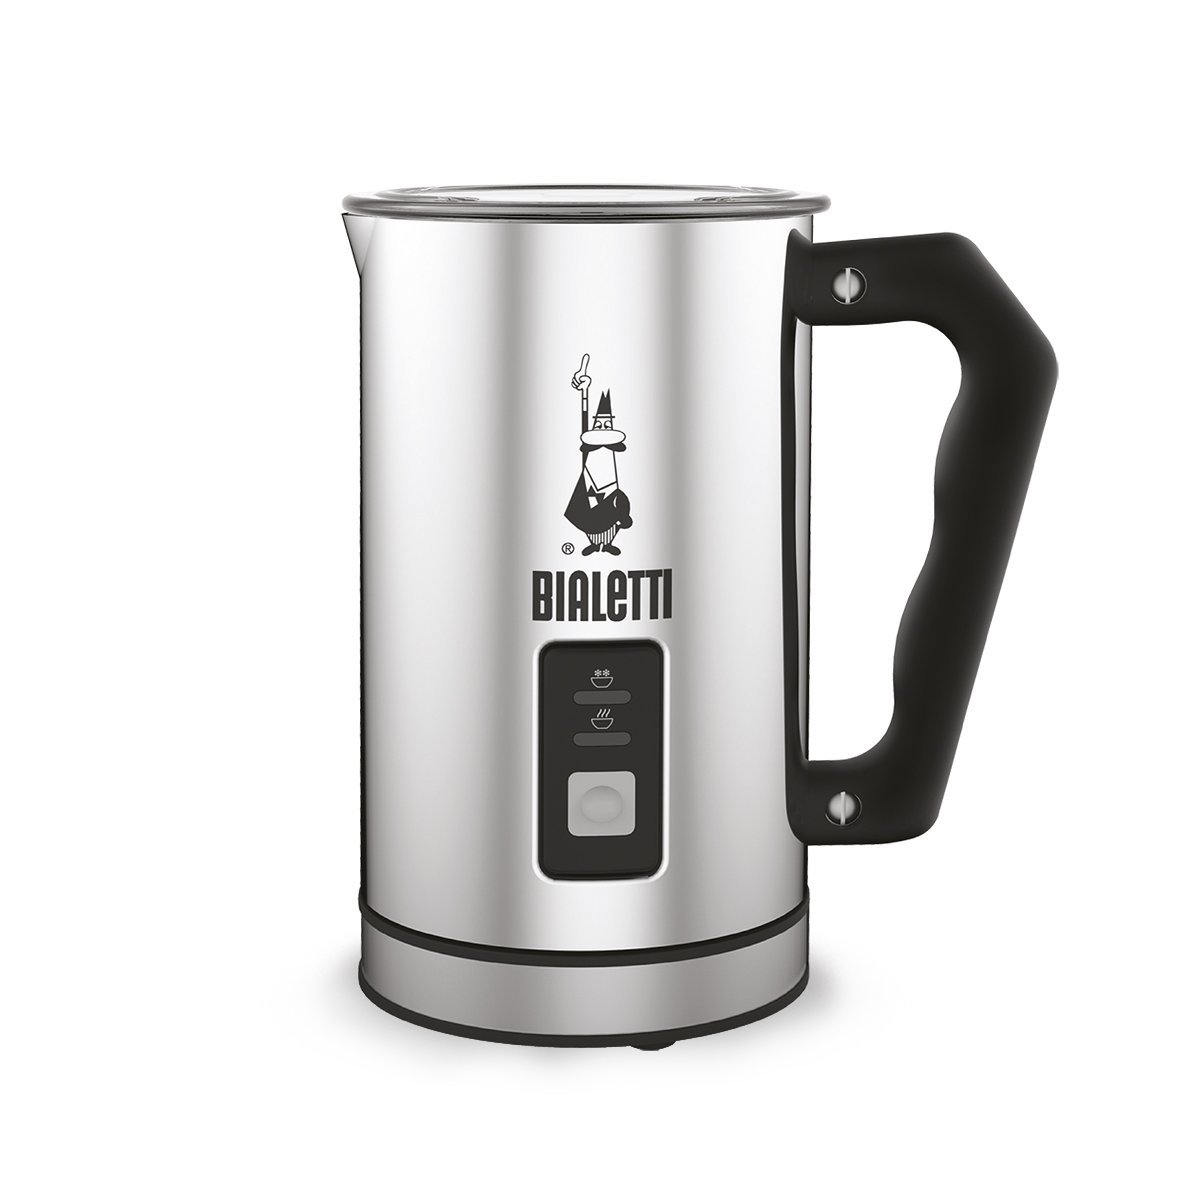 Bialetti Aluiminum Electric Milk Frother, Silver 20004430 4430_silber-